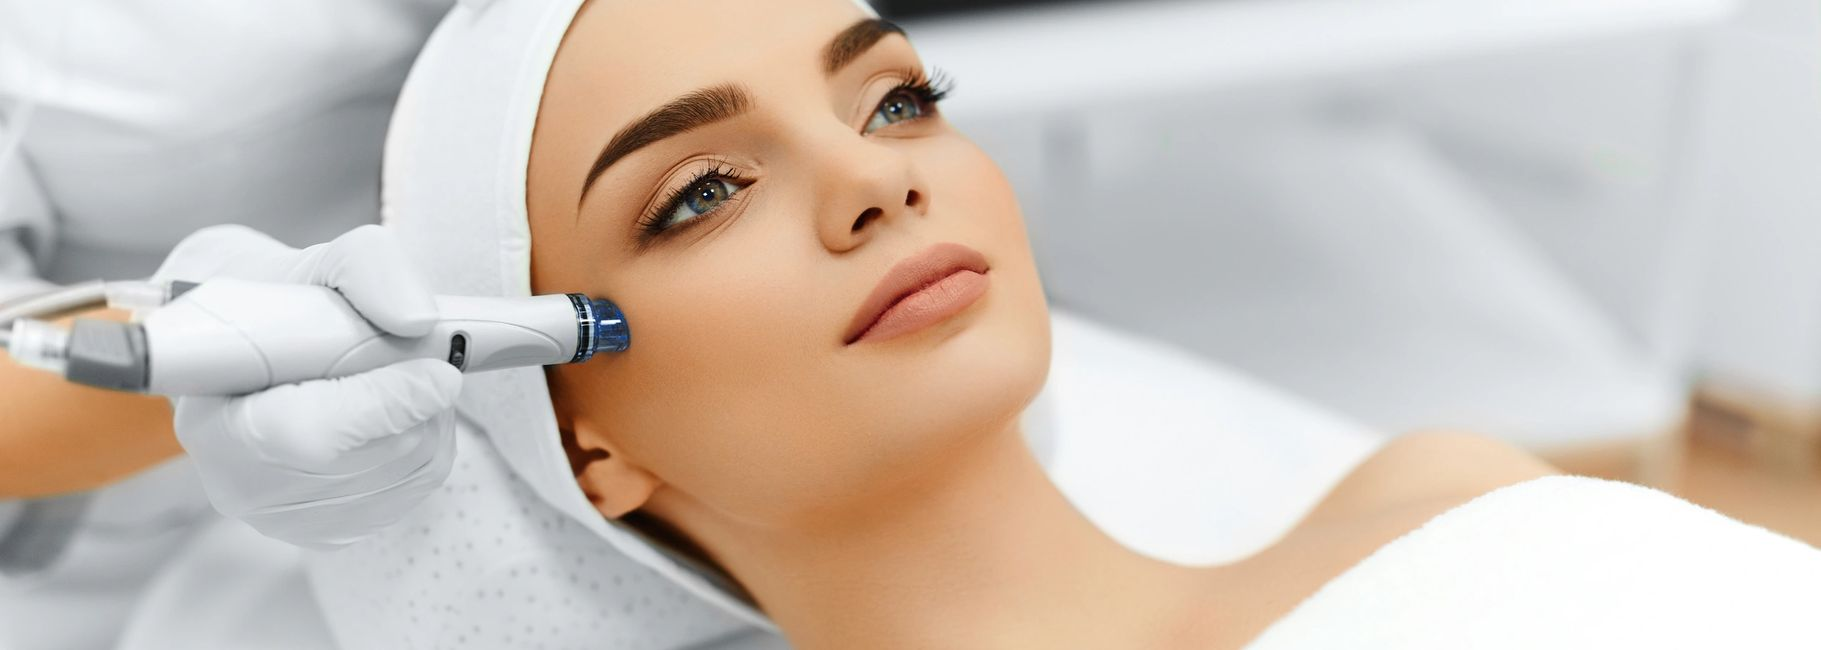 MICRO-NEEDLING IN YORKVILLE PETALS YORKVILLE BEAUTY BROW AND LASH BAR